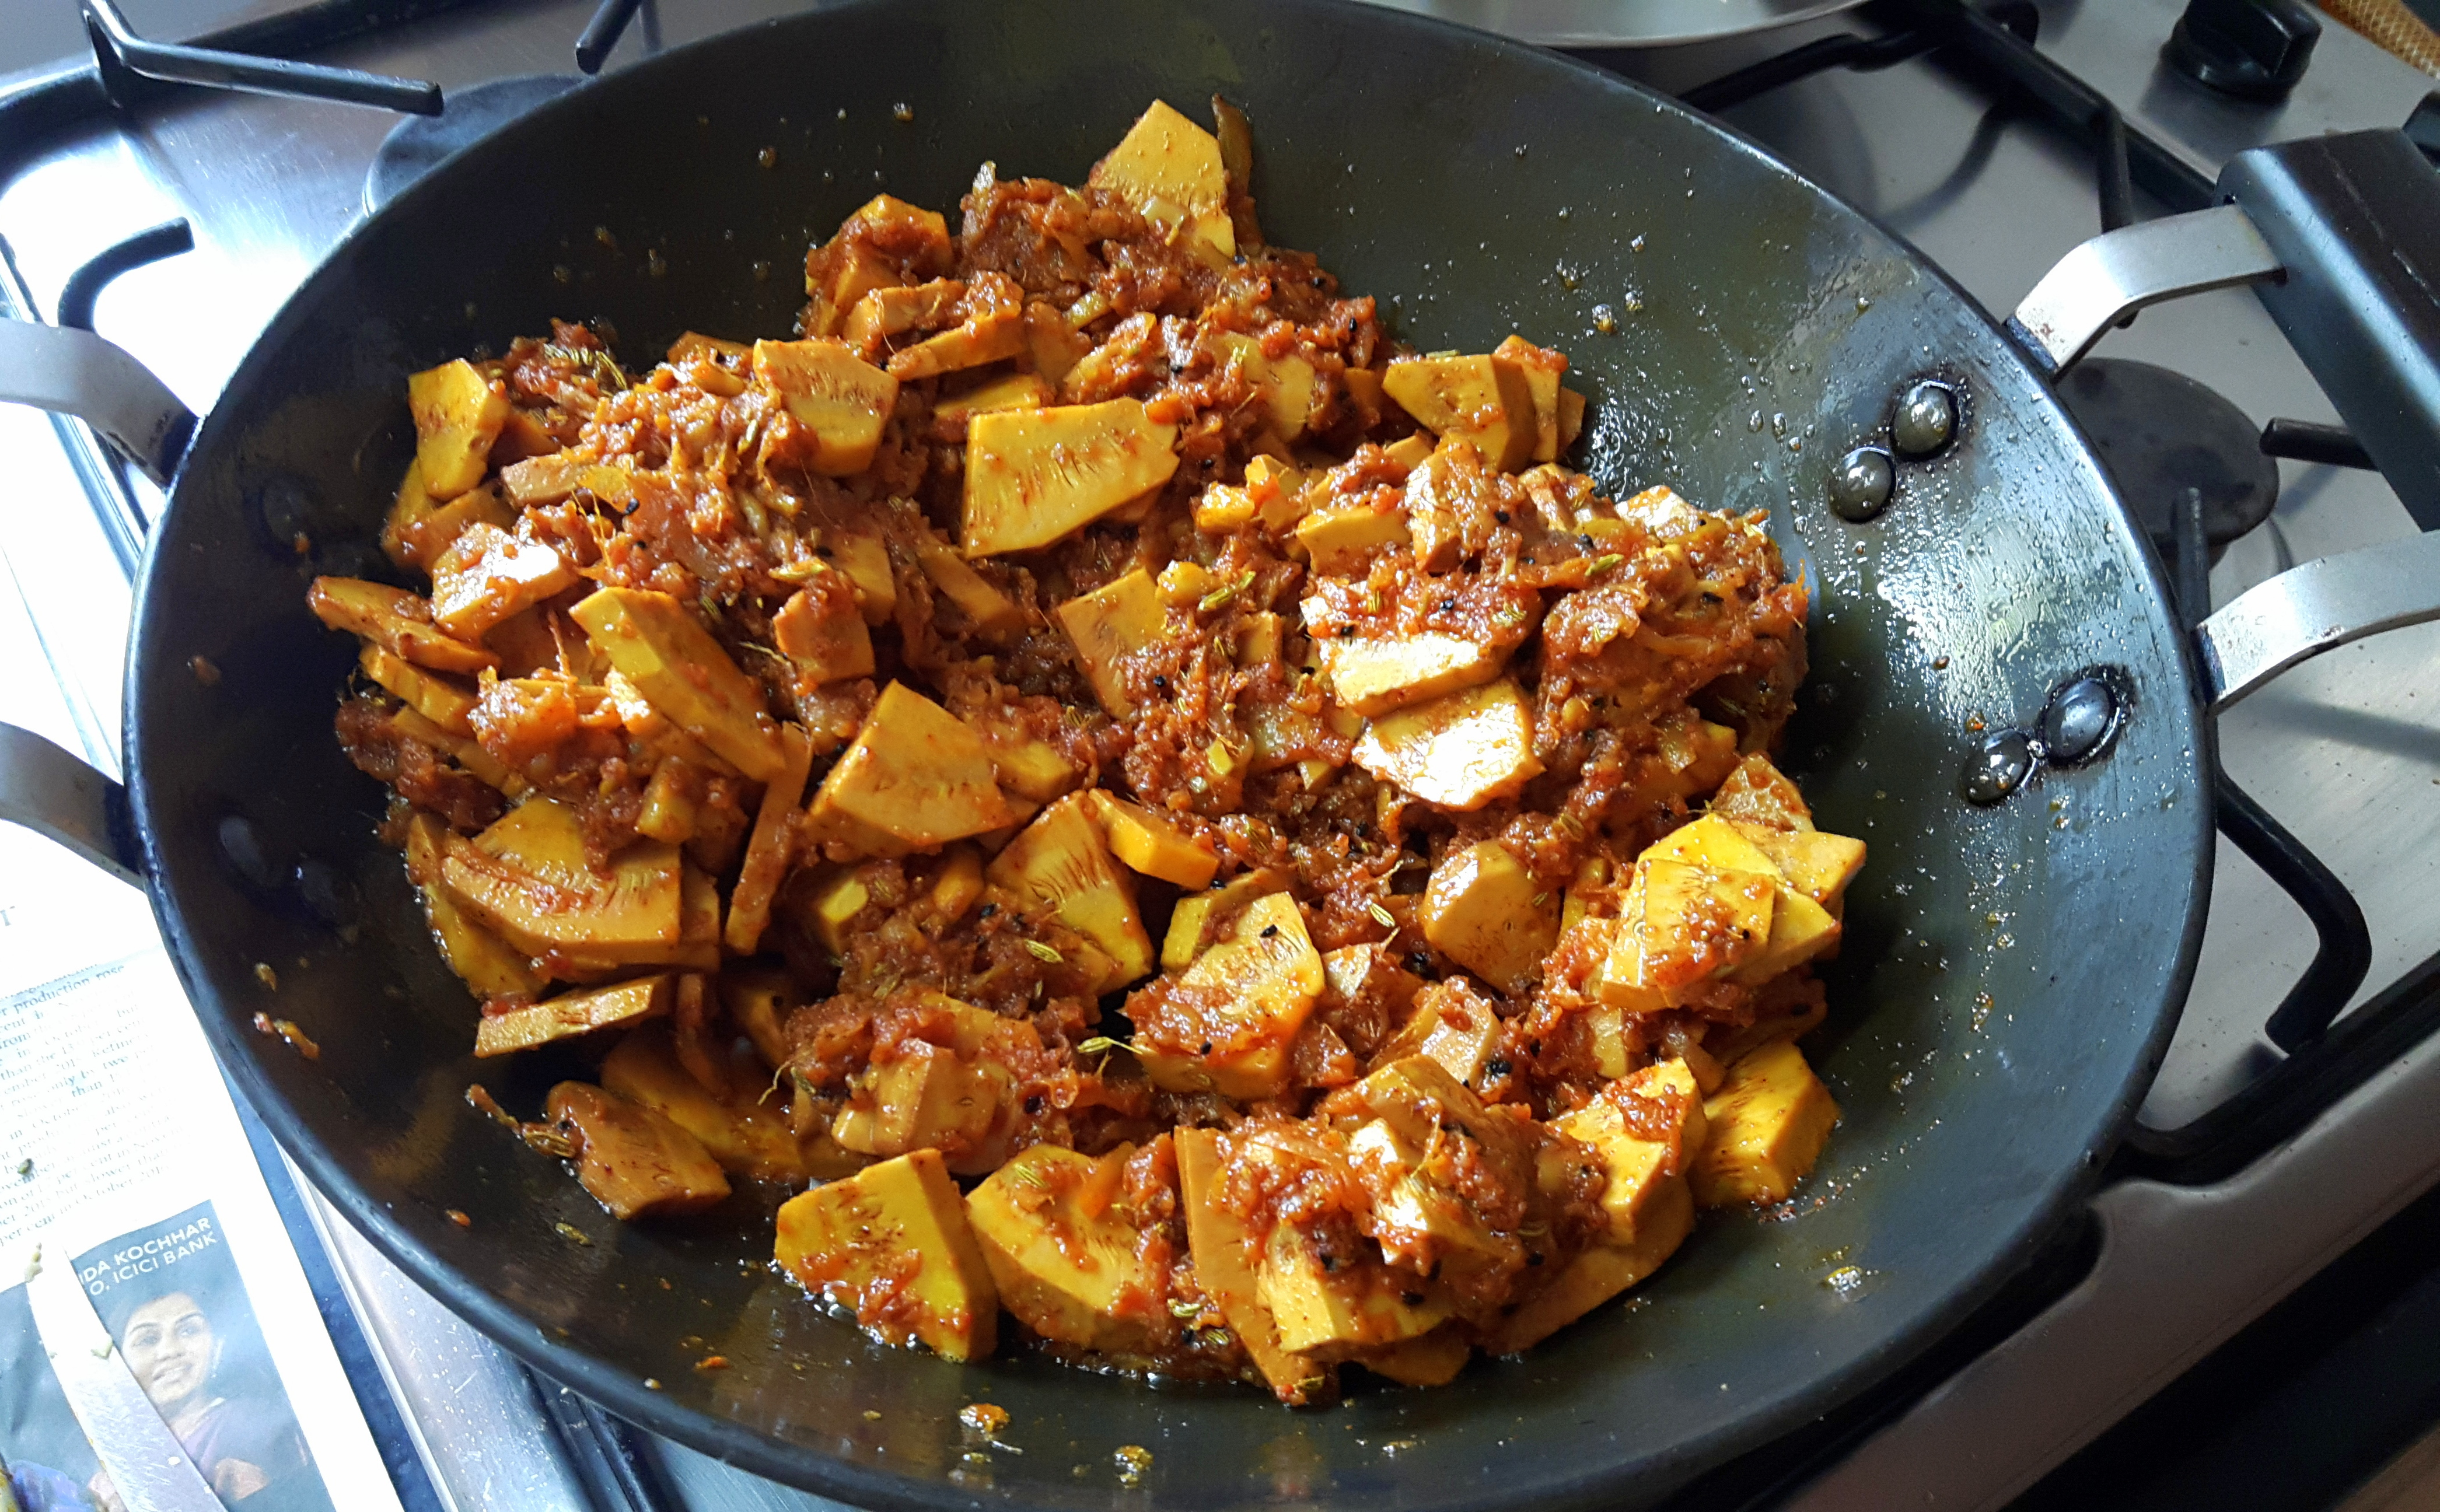 Stir it and fry for 4-5 minutes